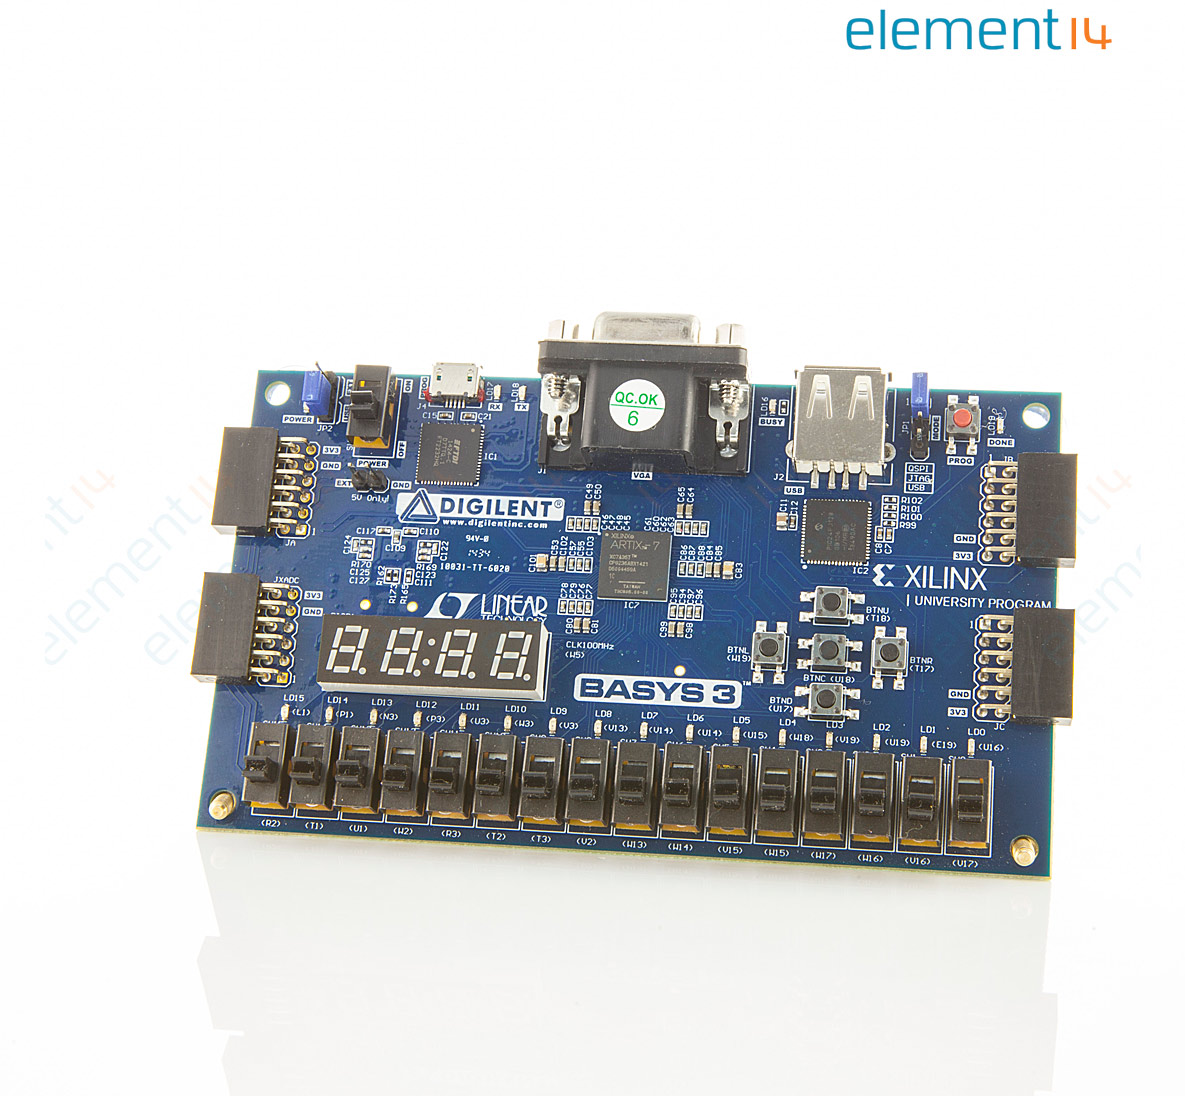 Development Board, Basys 3 Artix-7 FPGA, 7-Segment Display, 16 User  Switches, 16 User LED'S